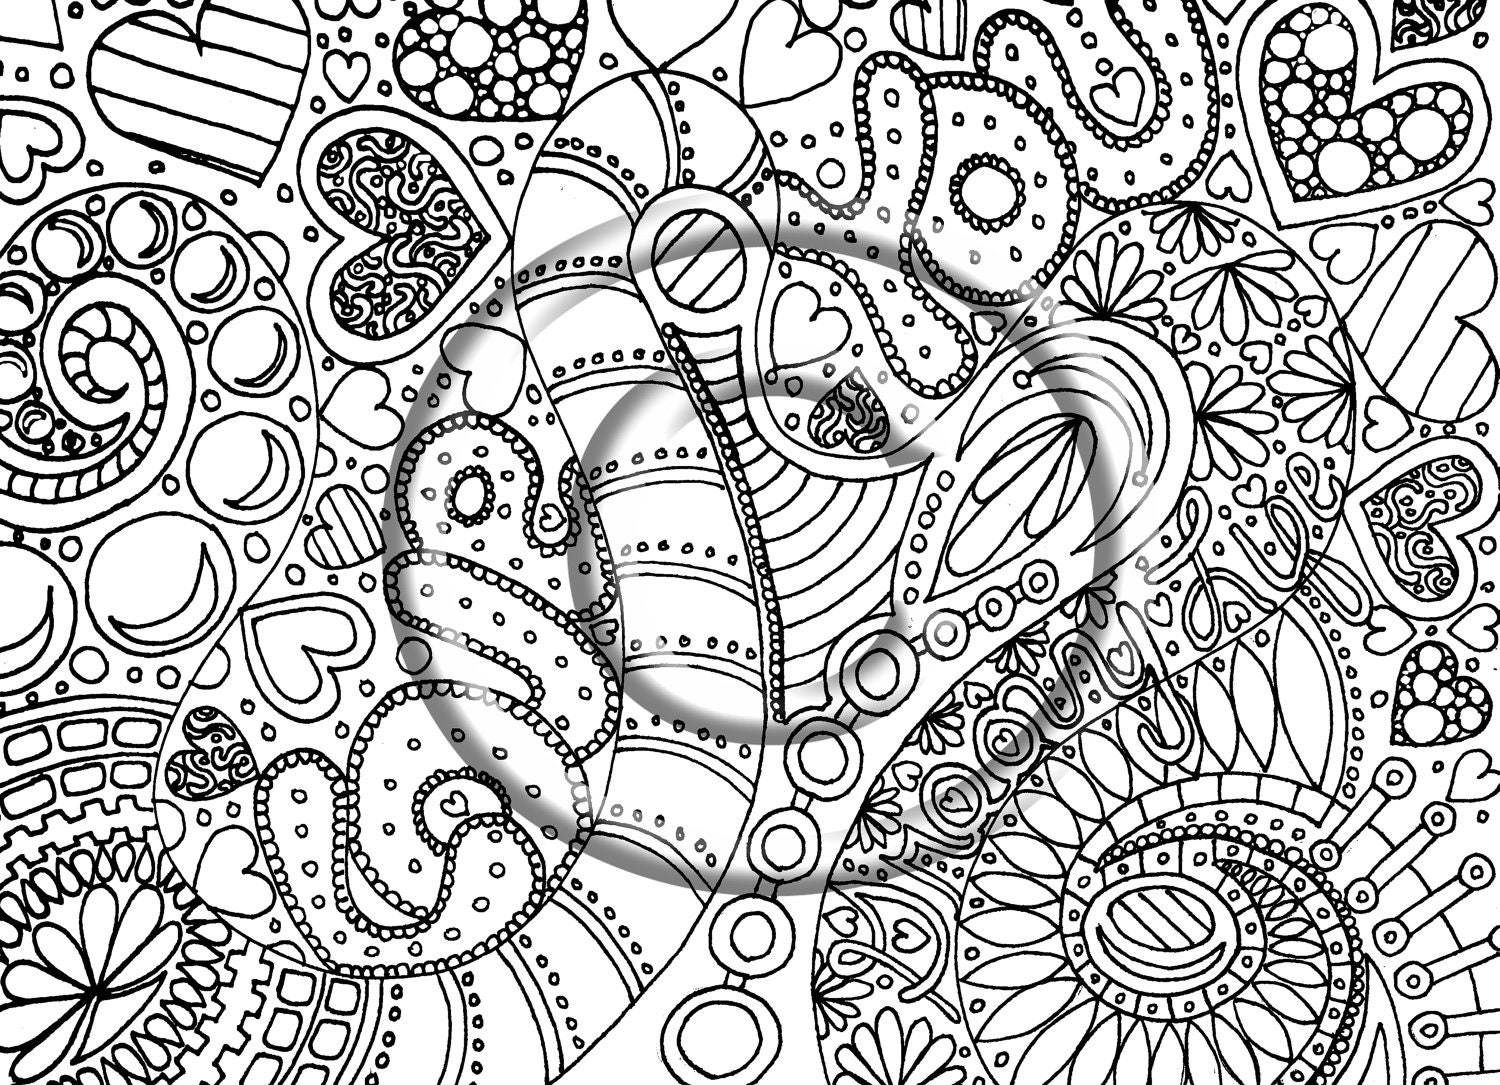 Inspiring crazy coloring pages photo gekimoe 31193 for Crazy coloring pages